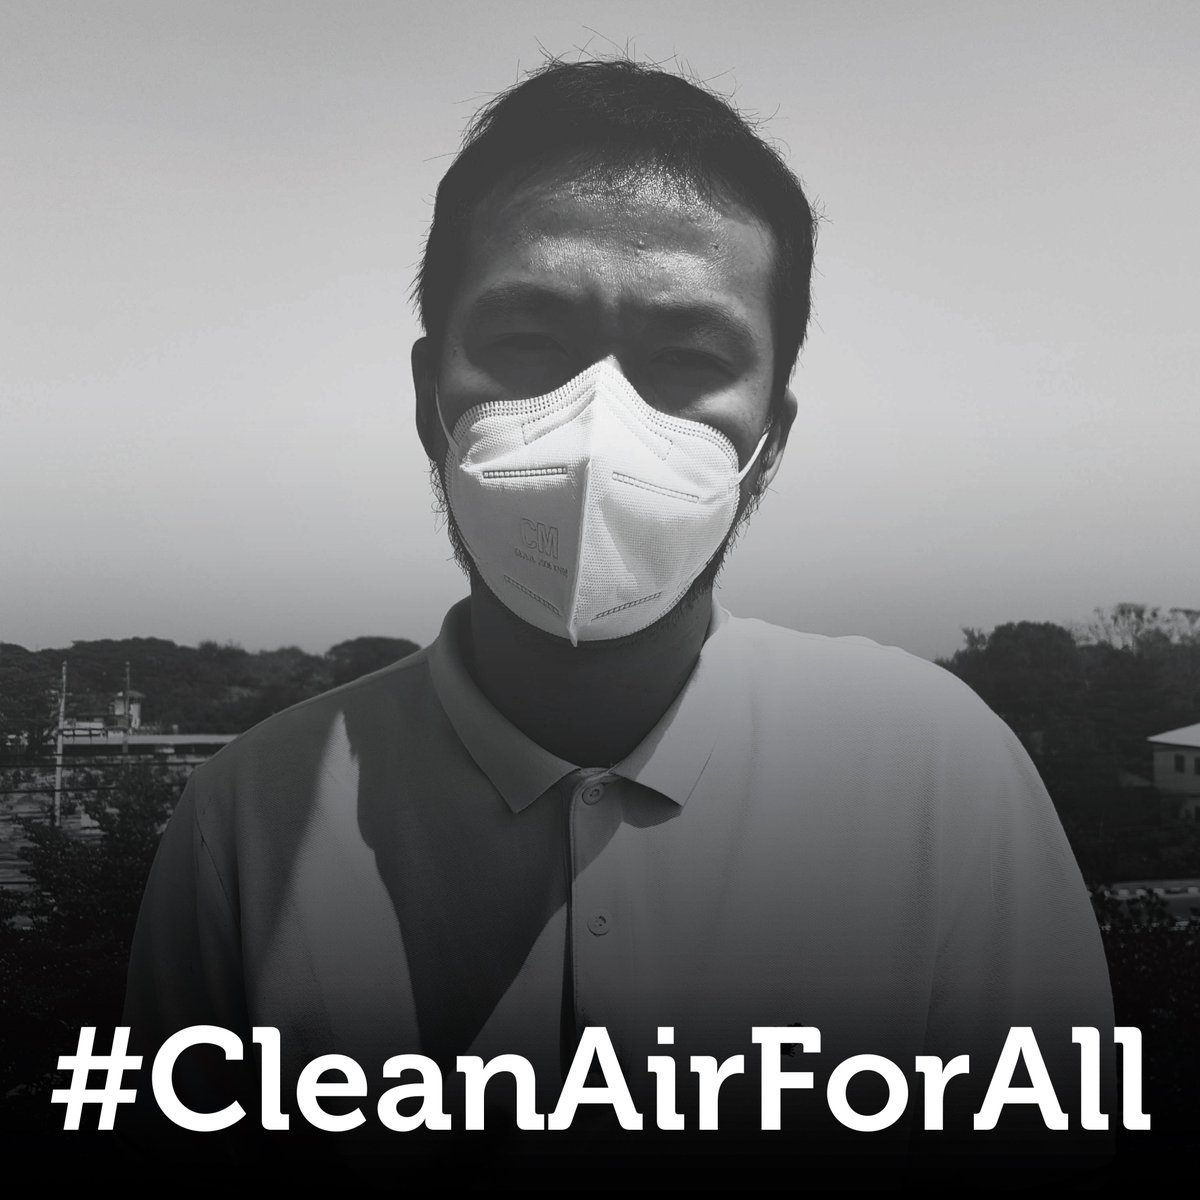 test Twitter Media - #Thailand Government must respond to air pollution crisis in #chiangmai. Clean air is basic #humanright  #developmentjustice #CleanAirForAll #humanrights @prdthailand https://t.co/rbeAWFiWo9